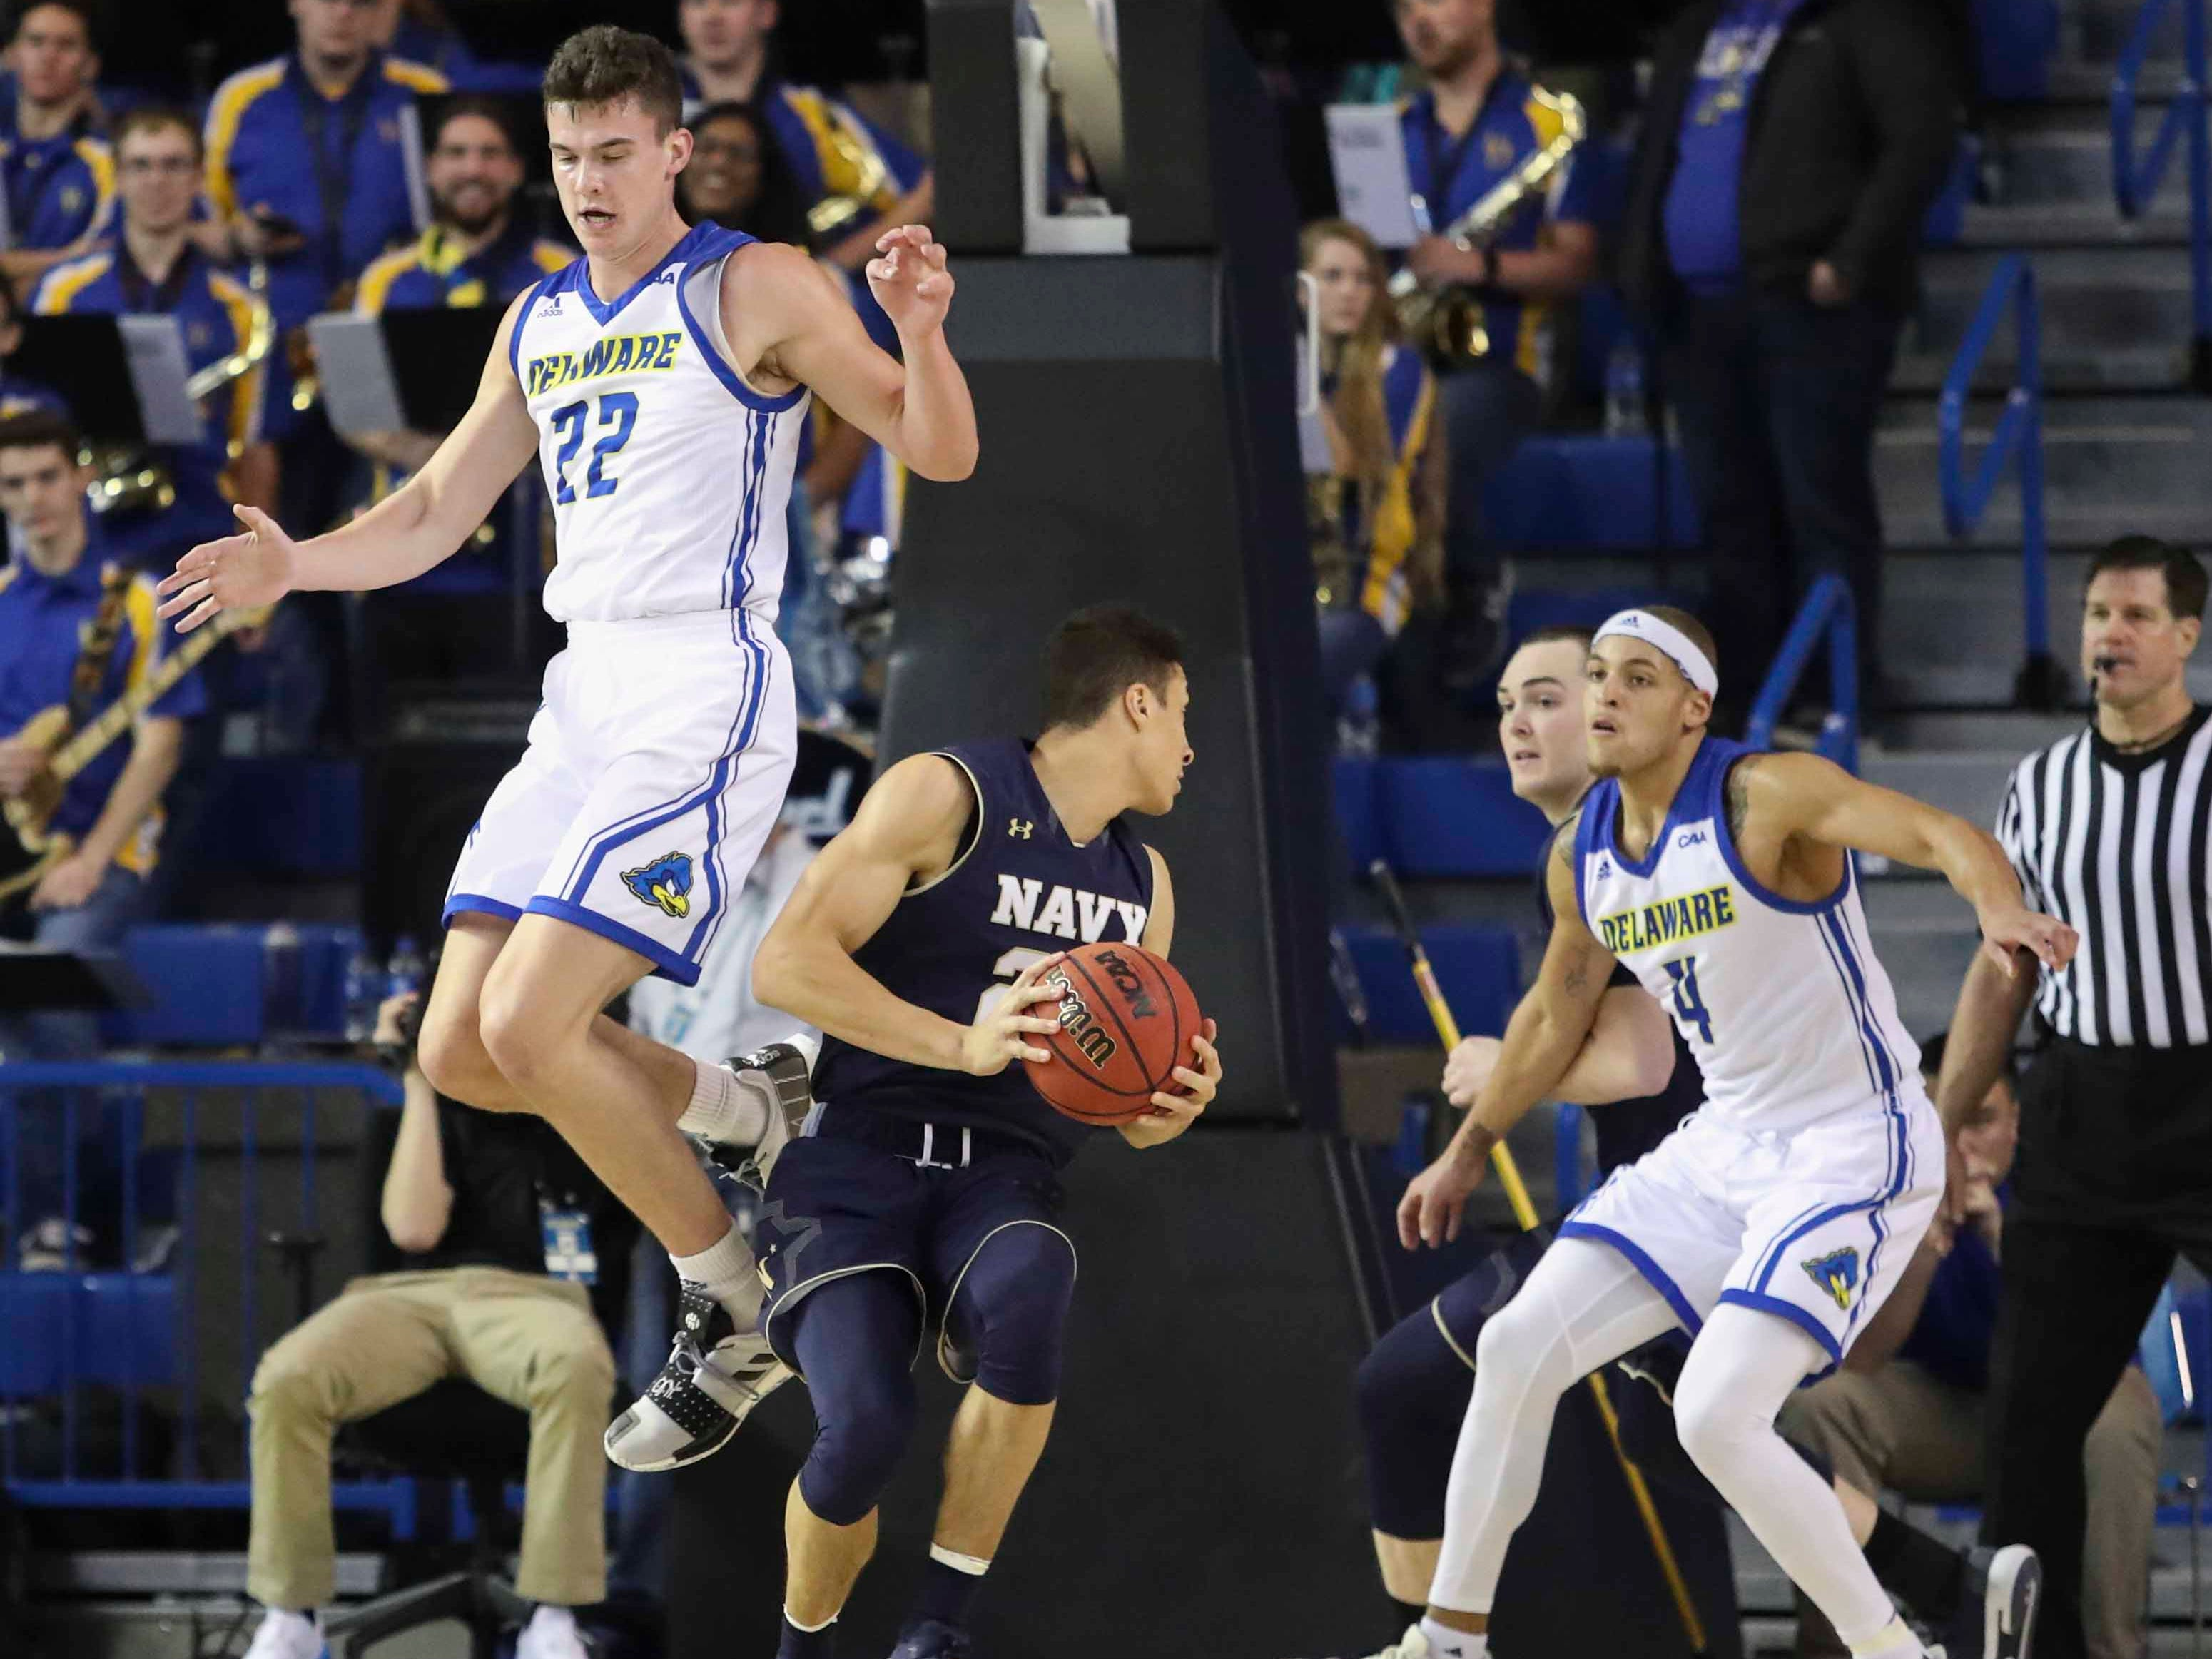 Delaware's Jacob Cushing (left) leaps the wrong way as teammate Darian Bryant joins in defense against Navy's Cam Davis in the second half of Delaware's 80-65 loss at the Bob Carpenter Center Wednesday.